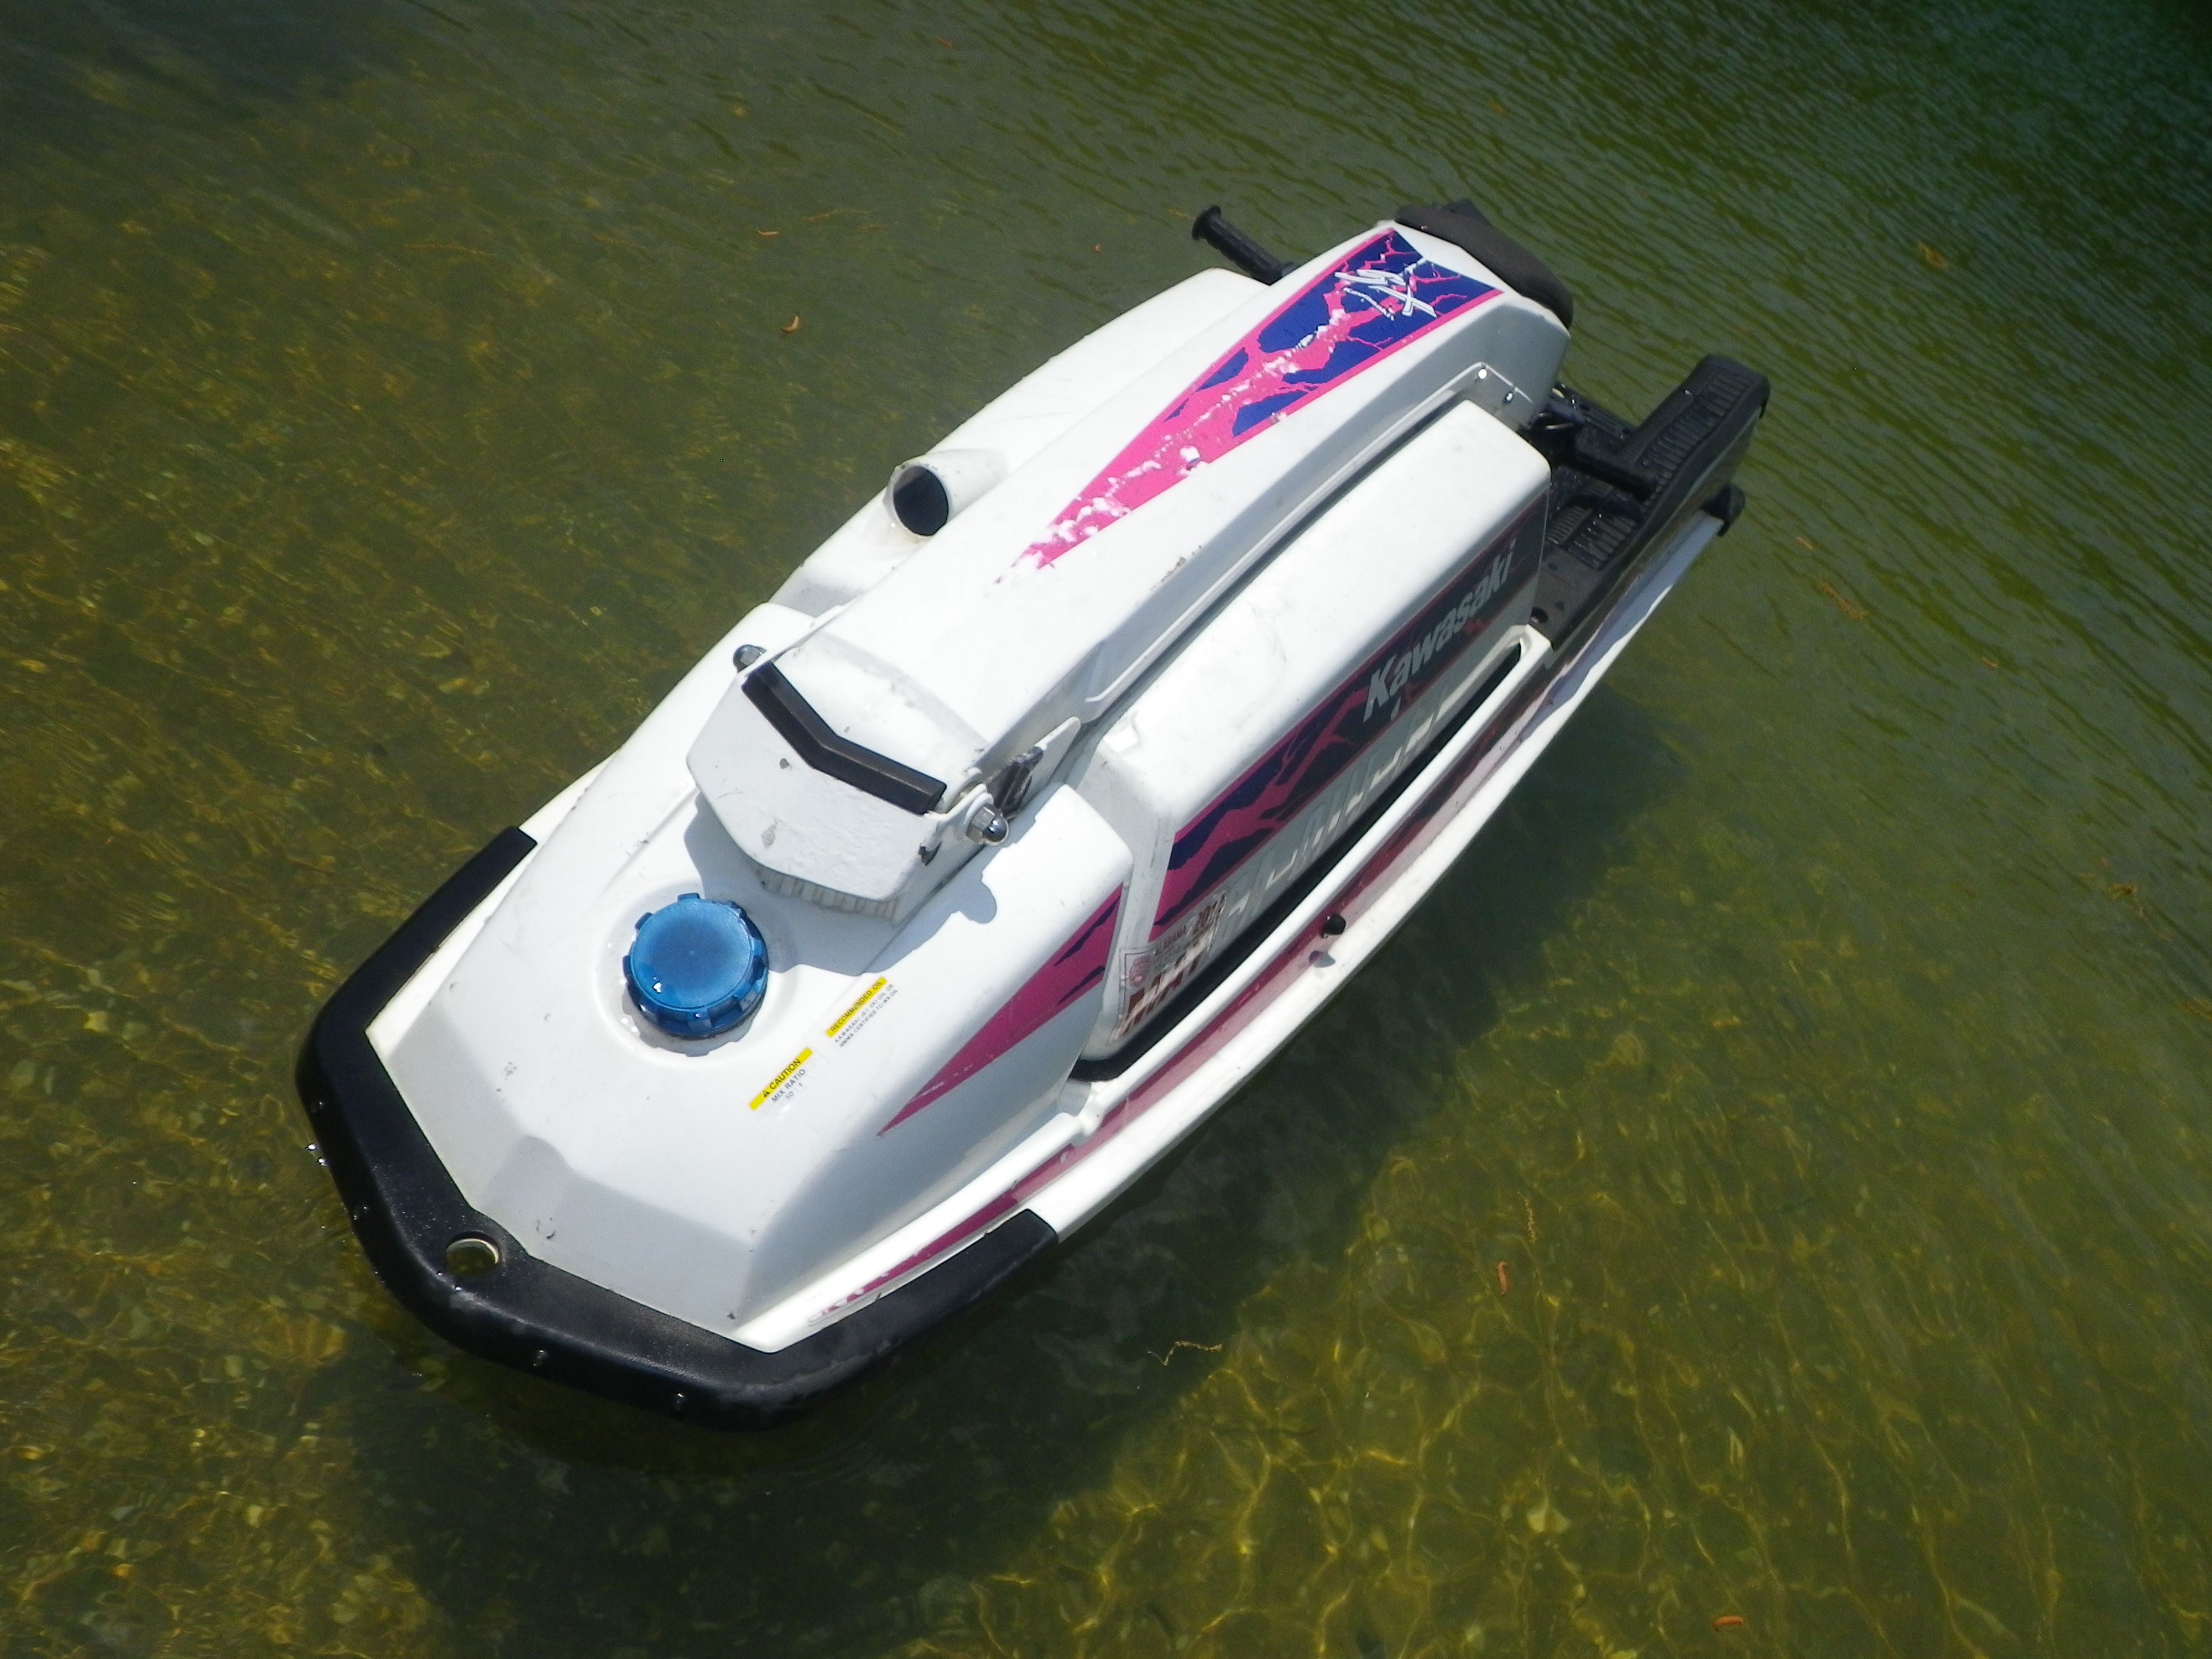 Just Picked Up A 91 Kawasaki 550sx First Stand Up I Have Tried Now I Have Two Jet Ski Skiing Water Crafts